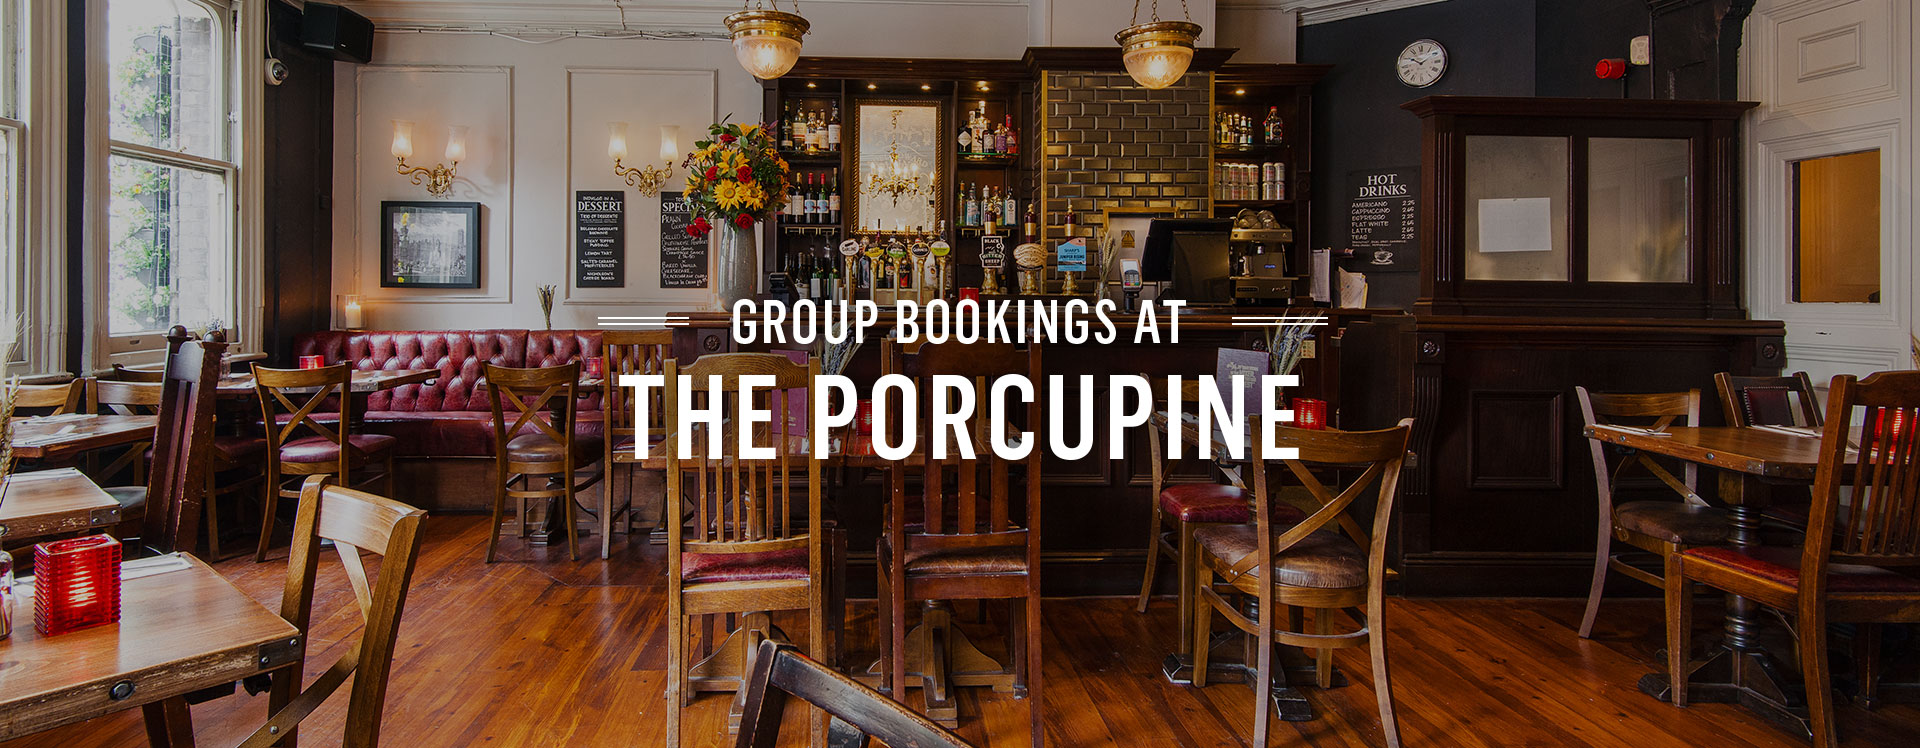 Group Bookings at The Porcupine